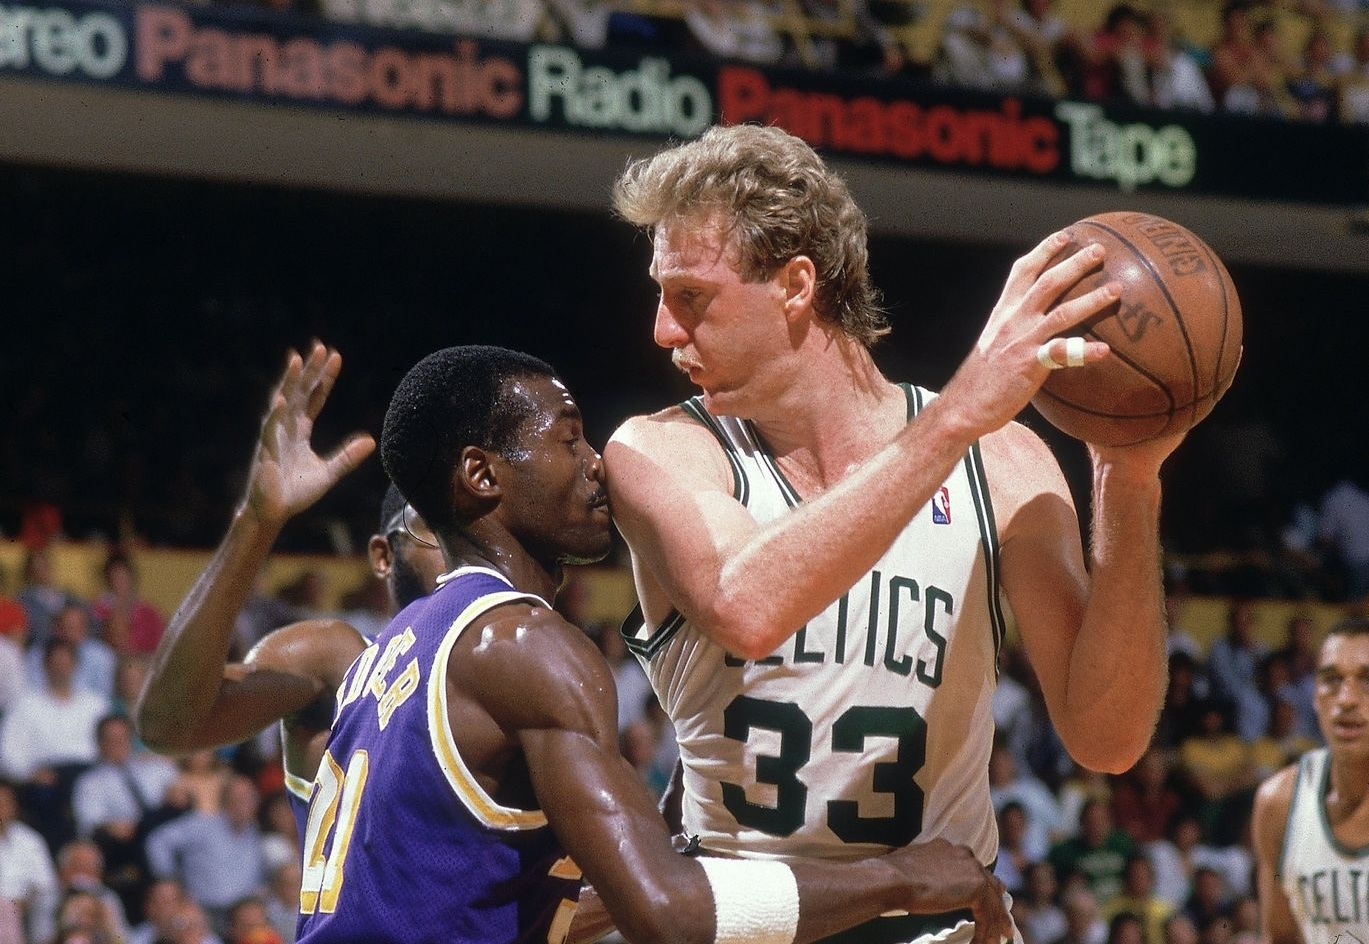 Larry Bird vs. Michael Cooper